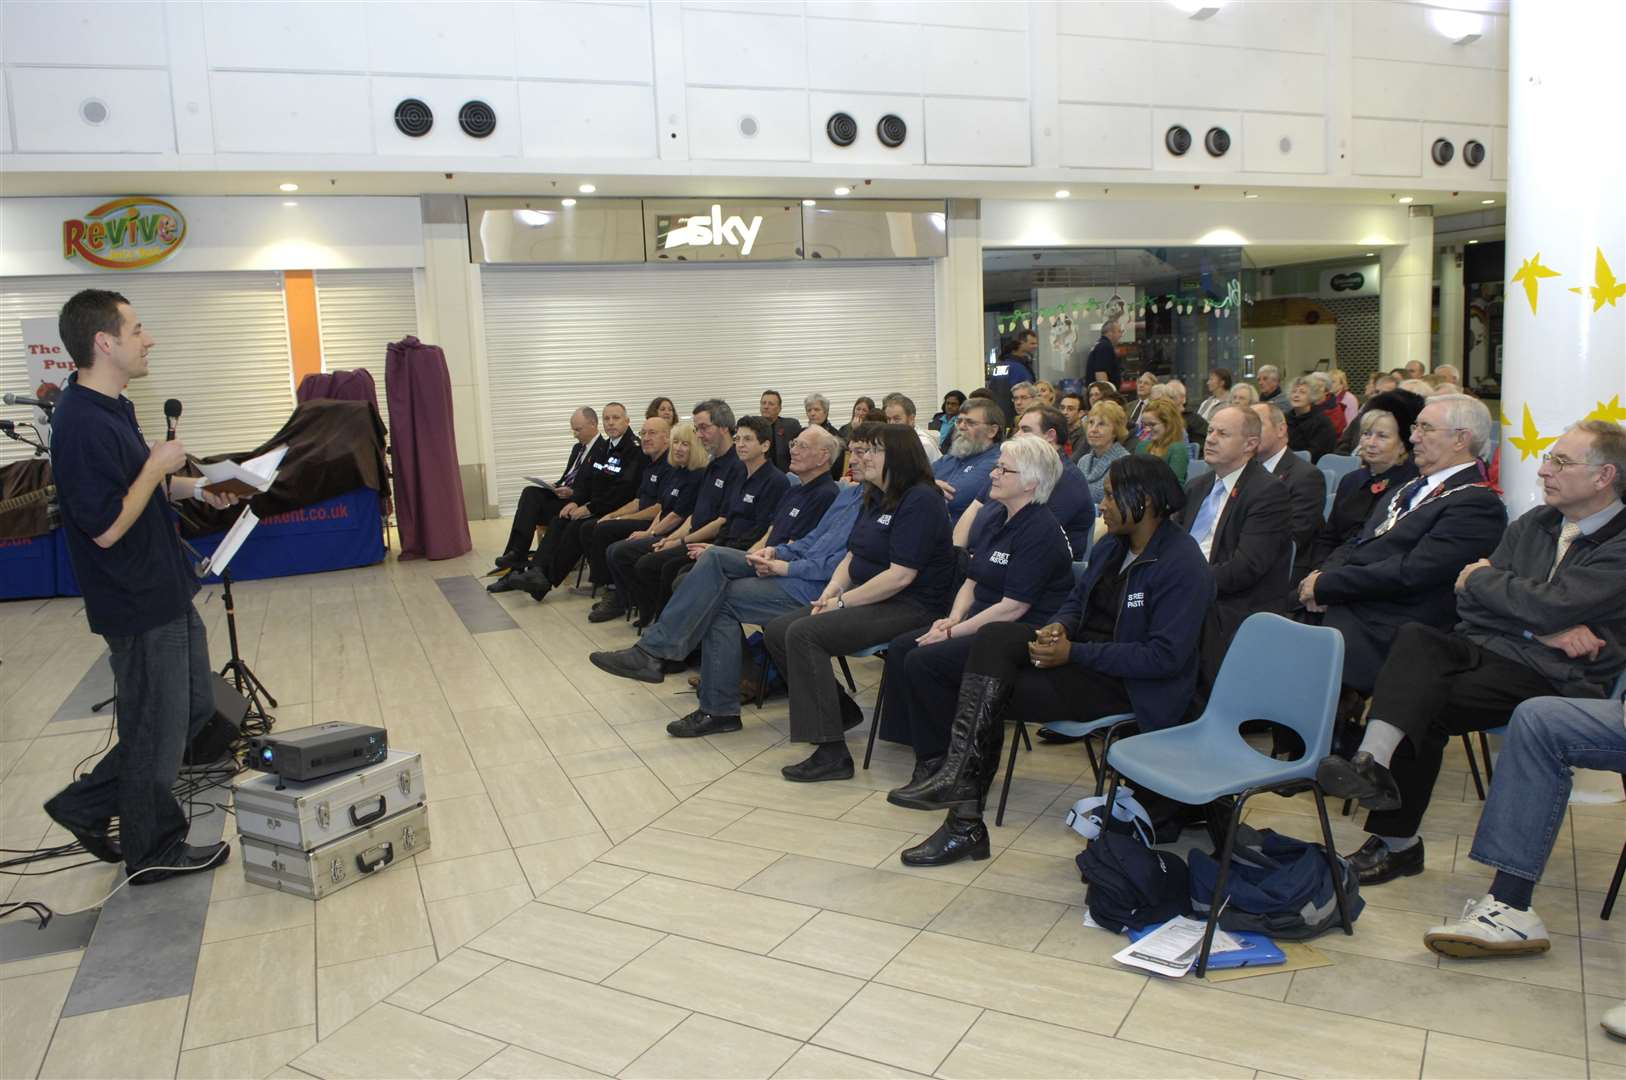 The launch of the Ashford Street Pastor scheme in 2010. Picture: Gary Browne